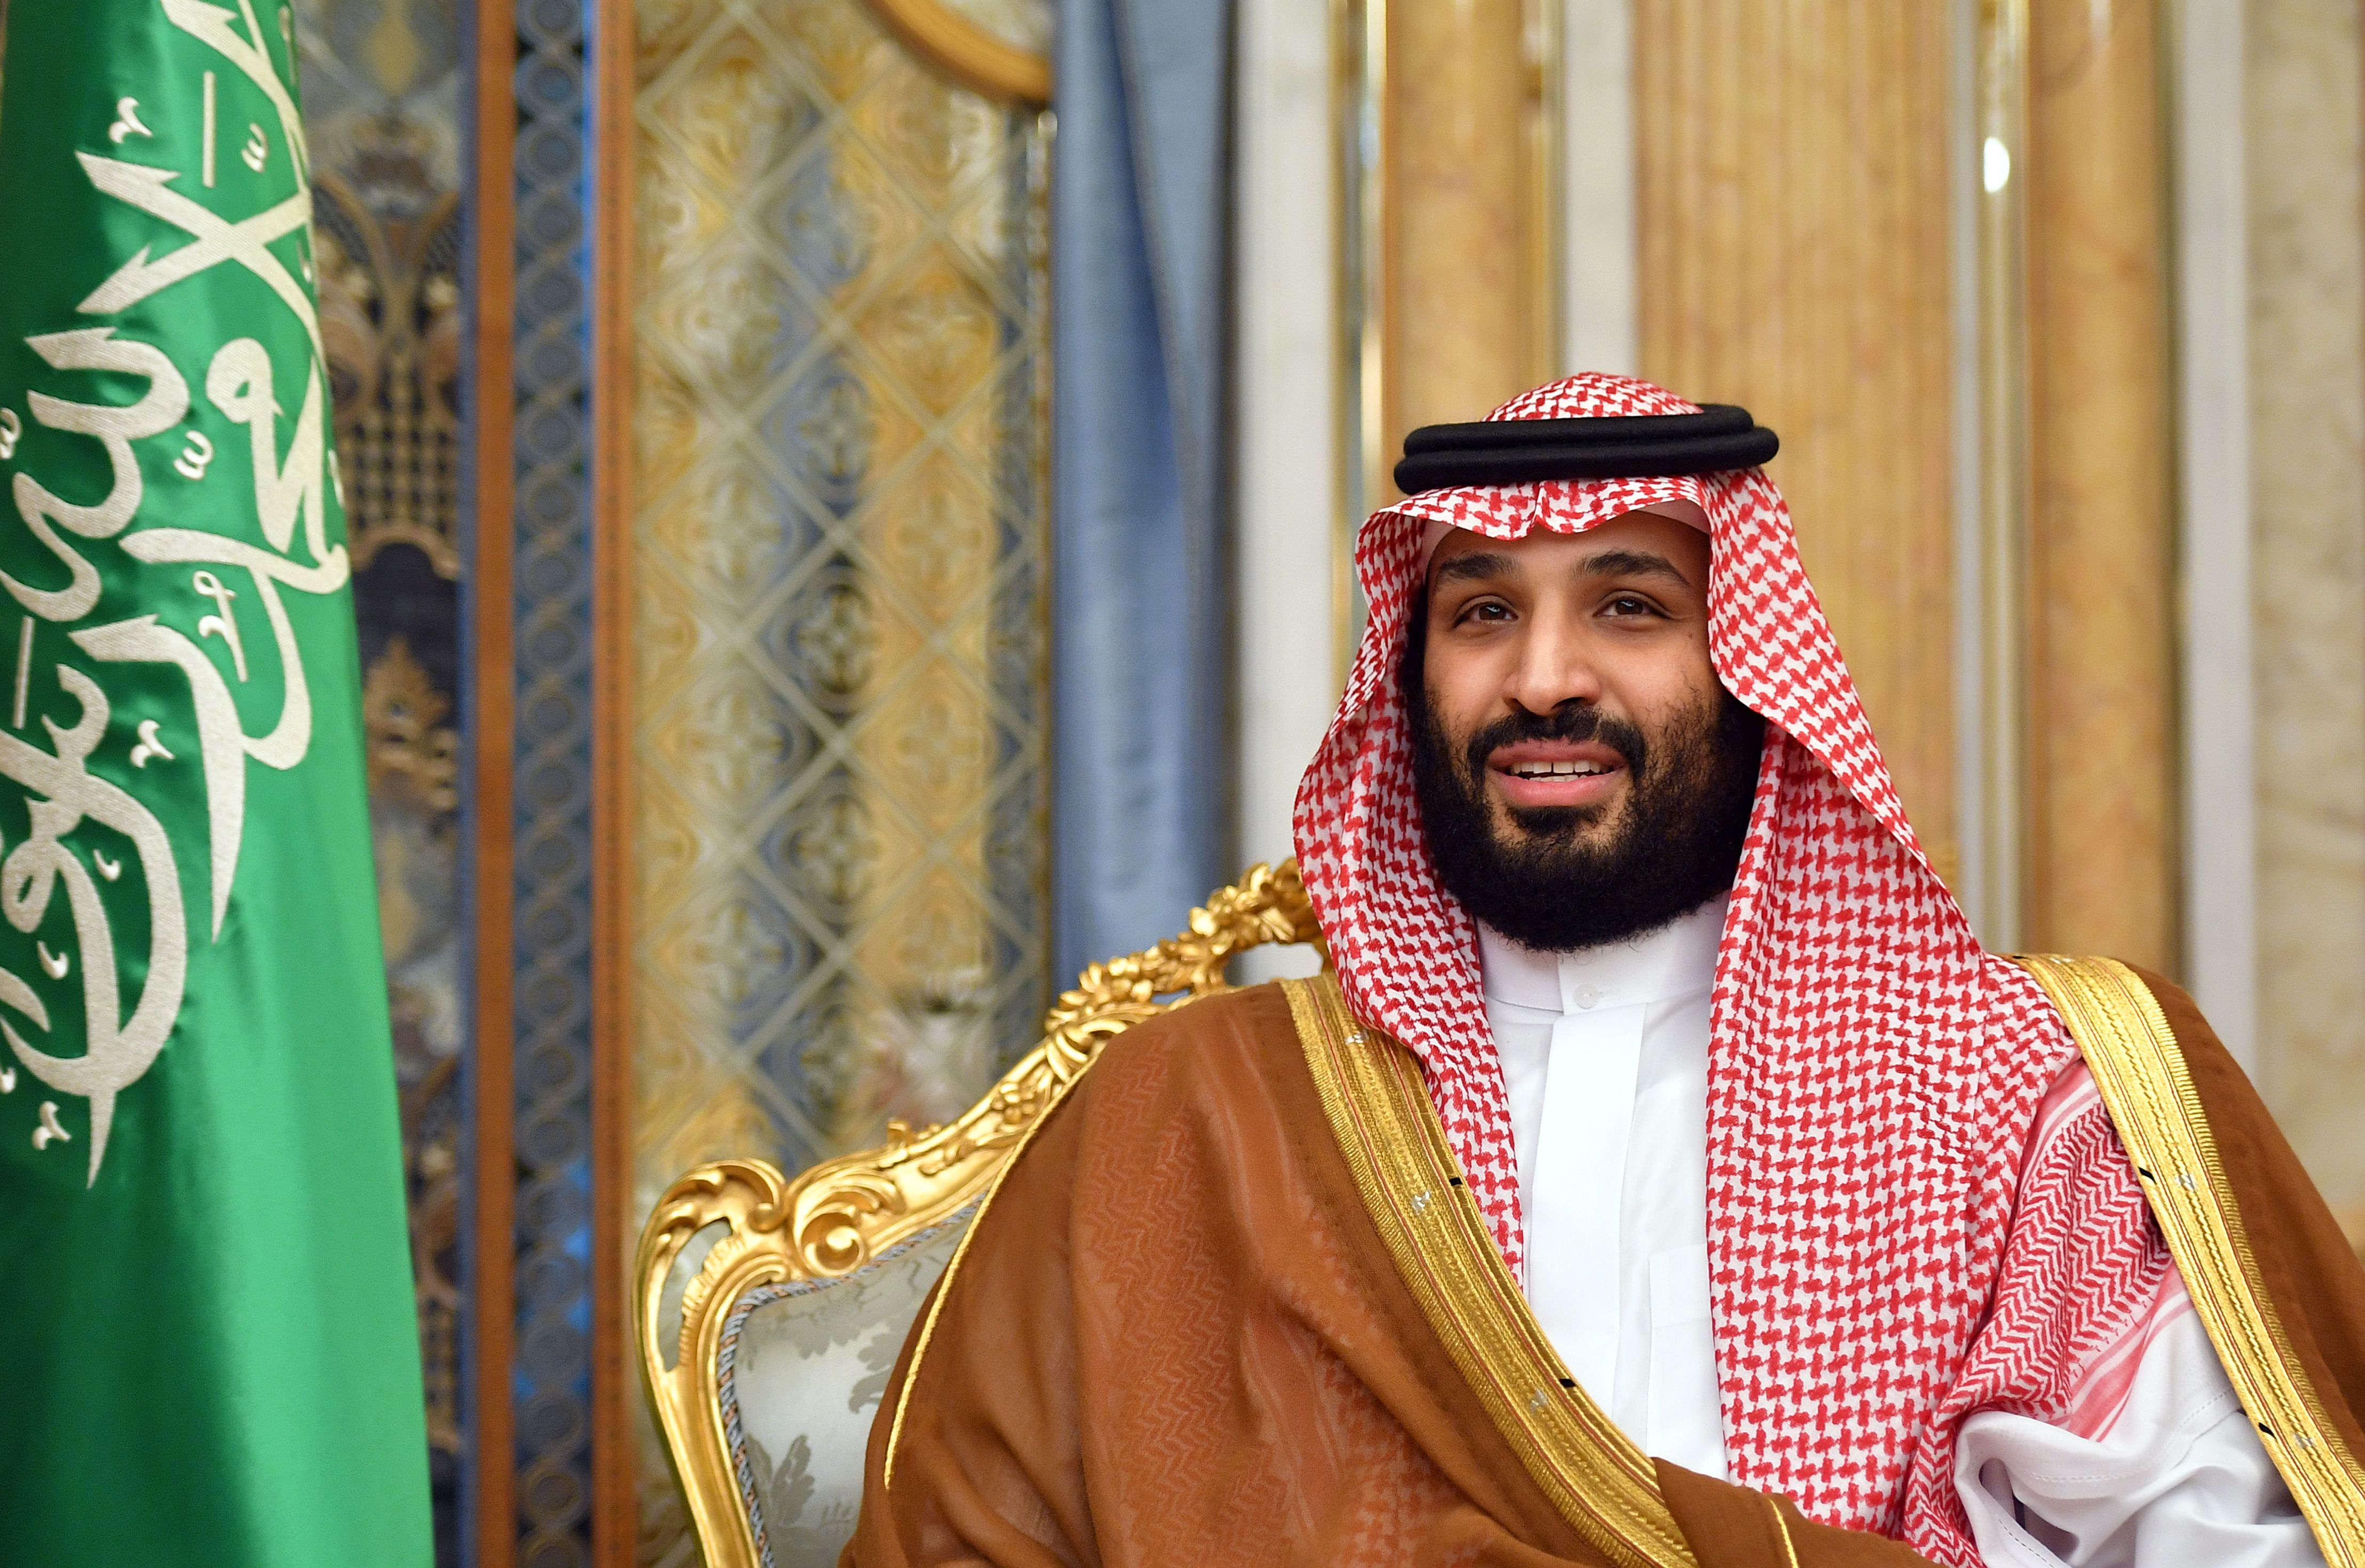 Saudi Arabia Now Open to Tourists, But Don't Bring Too Many Bibles